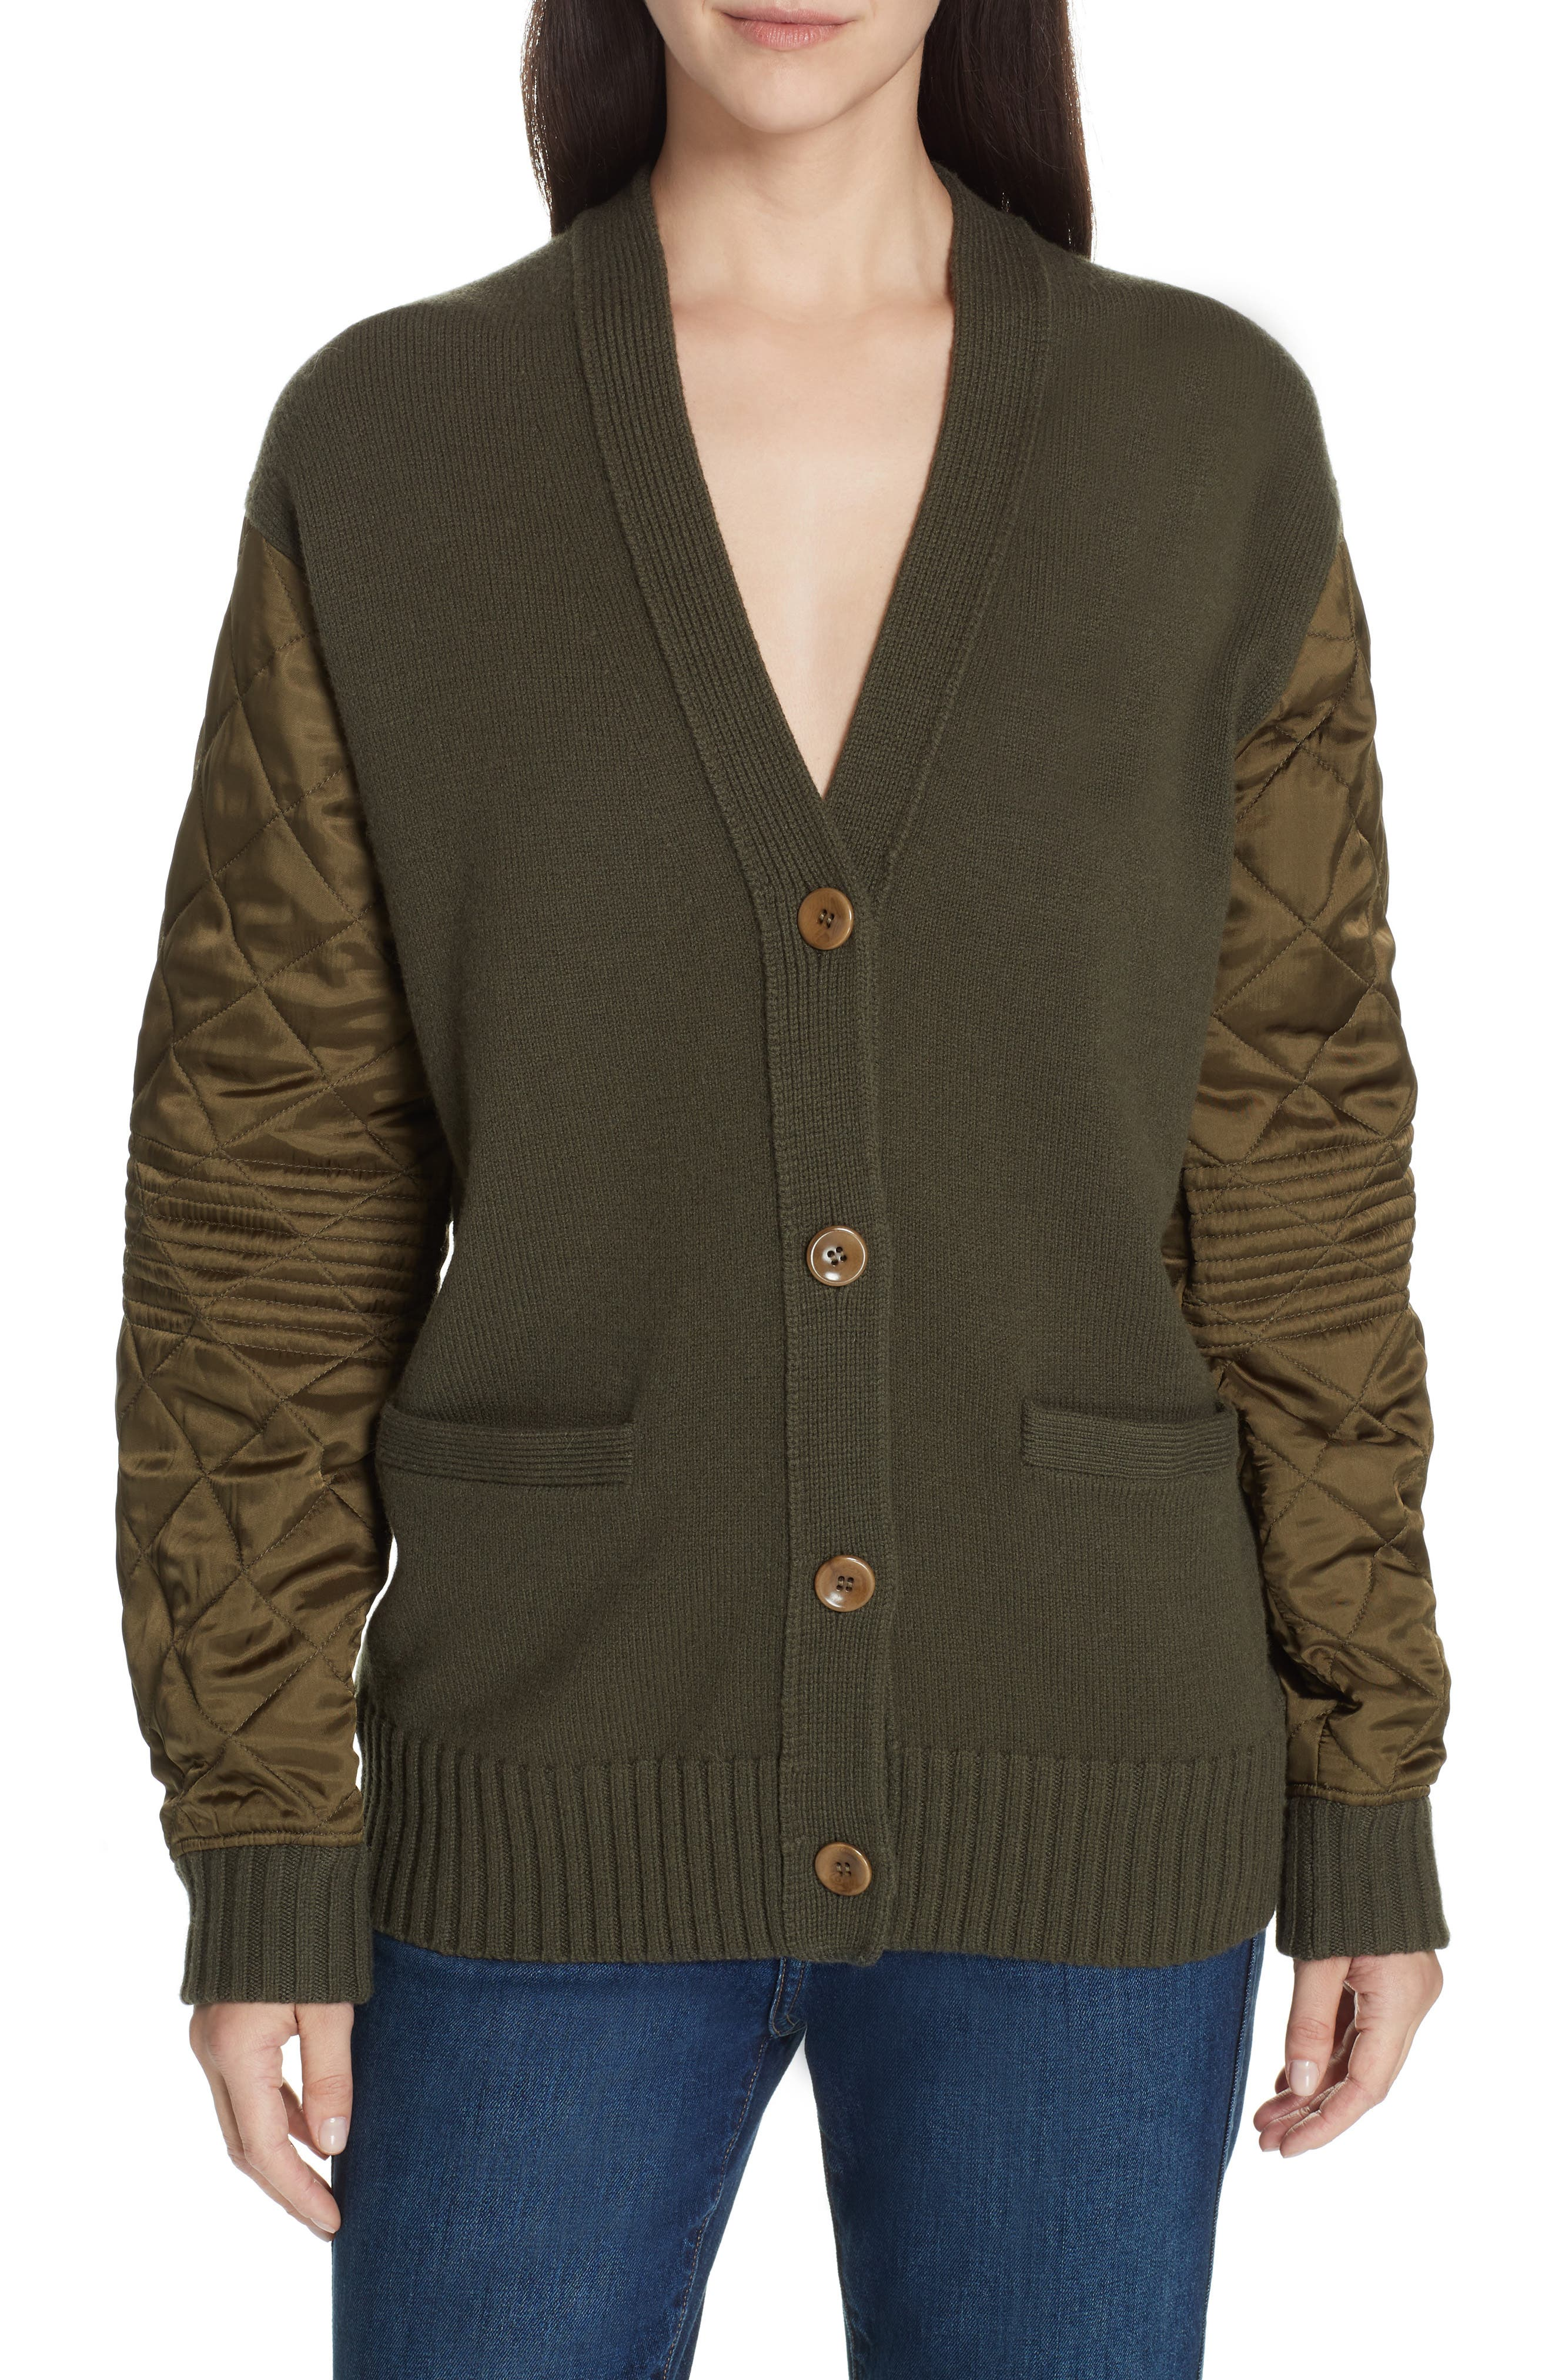 PROENZA SCHOULER, PSWL Quilted Sleeve Merino Wool Cardigan, Main thumbnail 1, color, FOREST